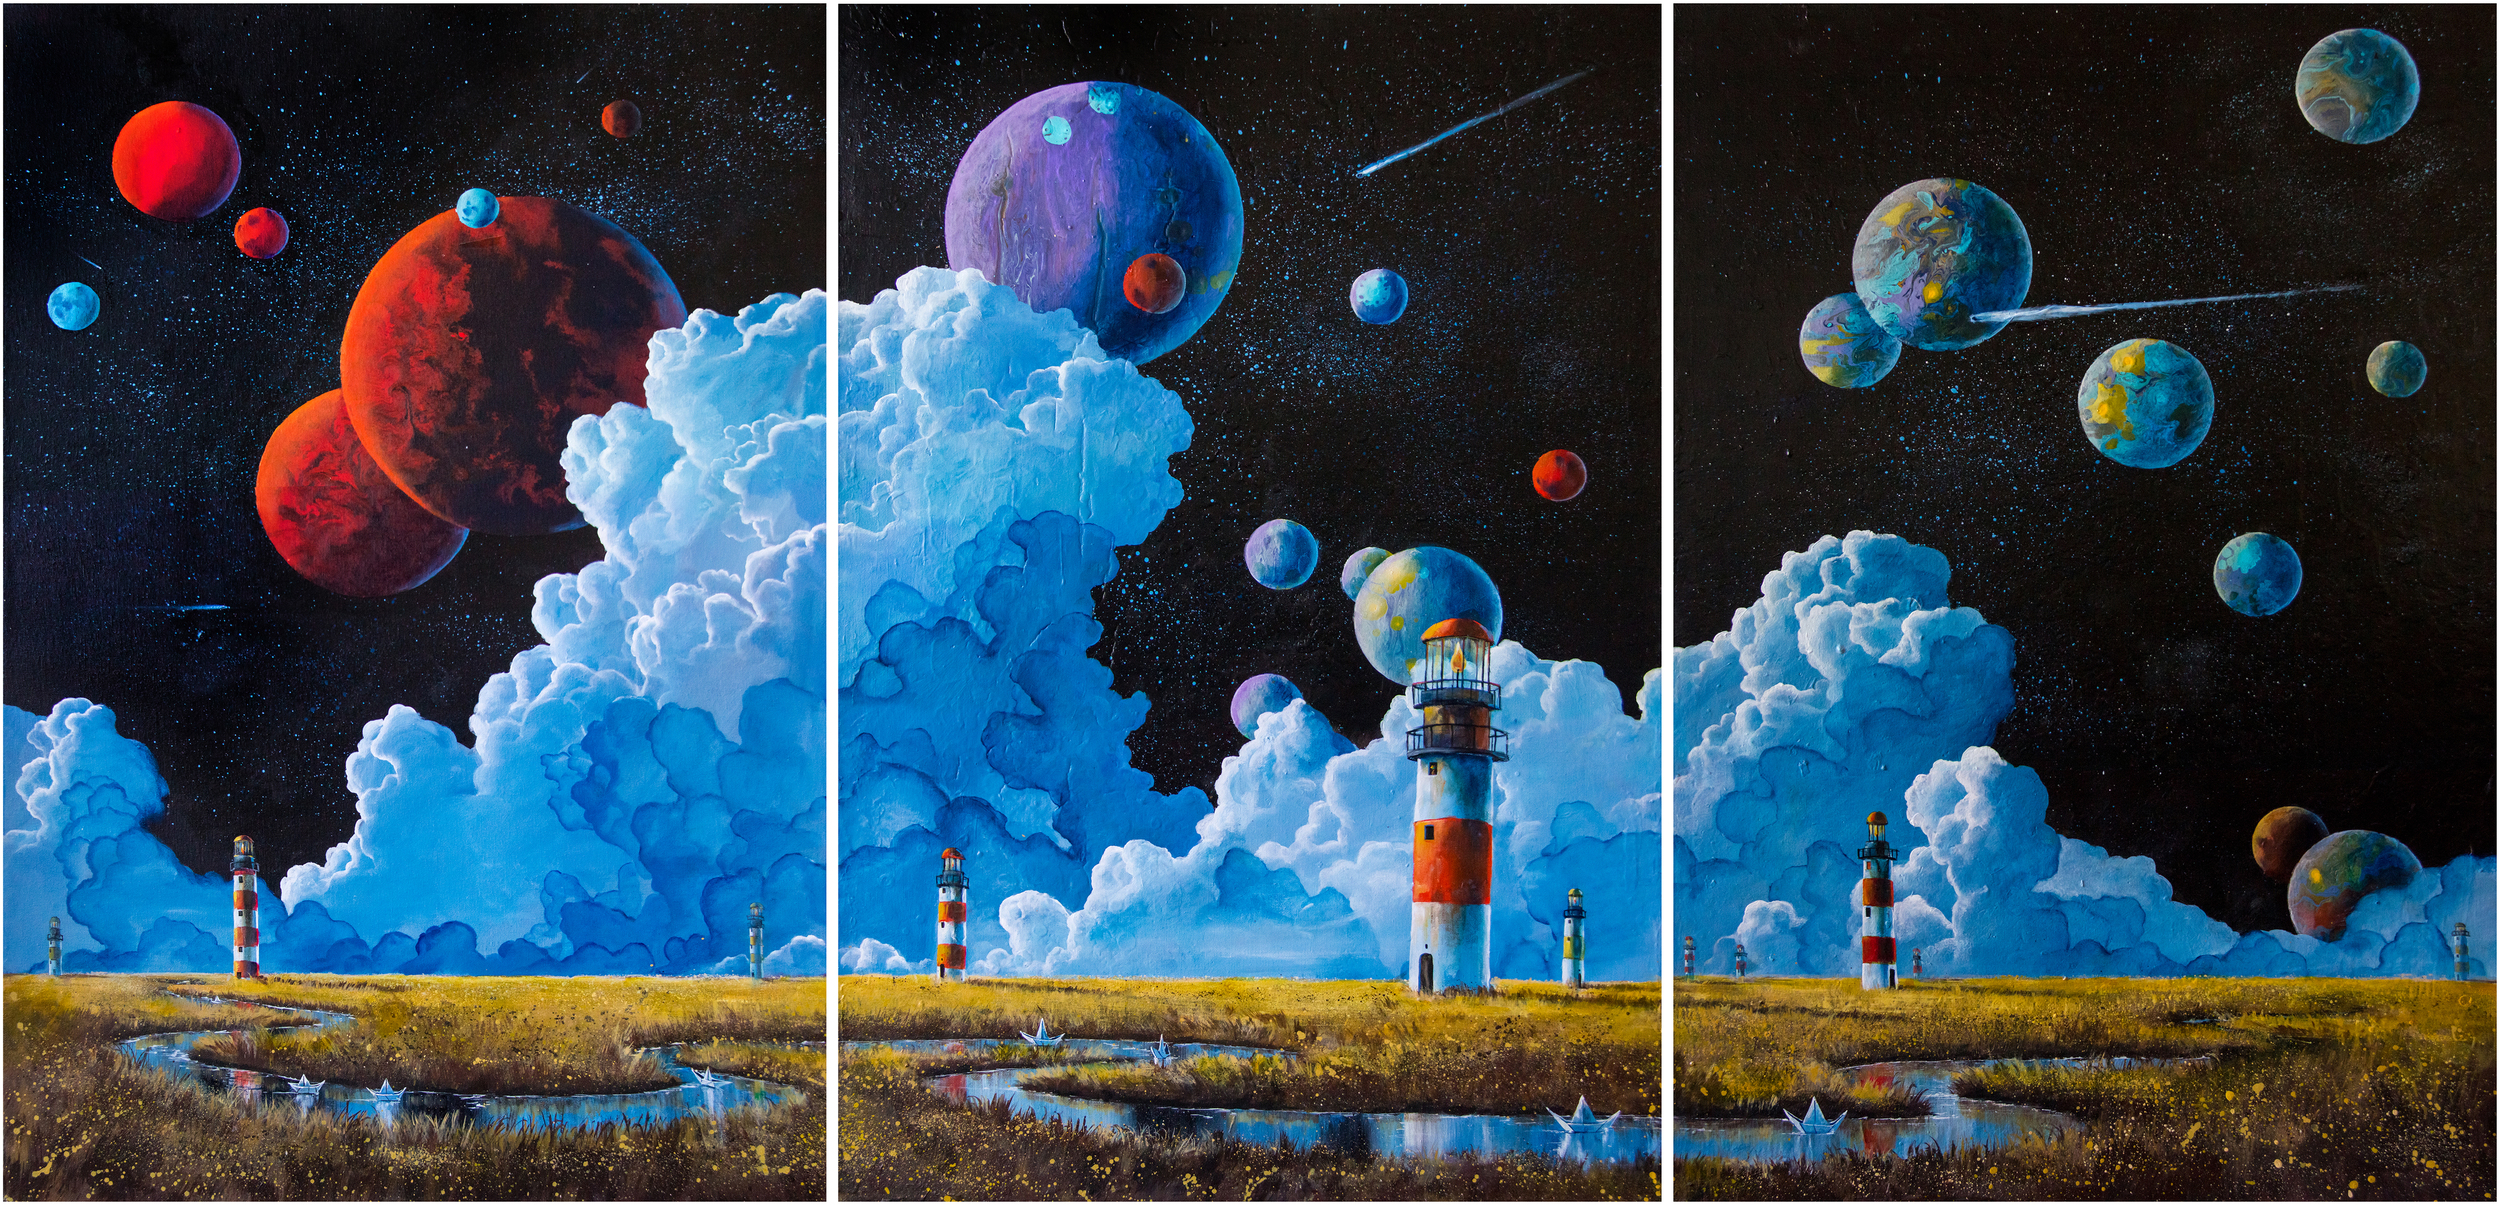 """The Voyage""                         36"" x 72"", Acrylic on canvas"